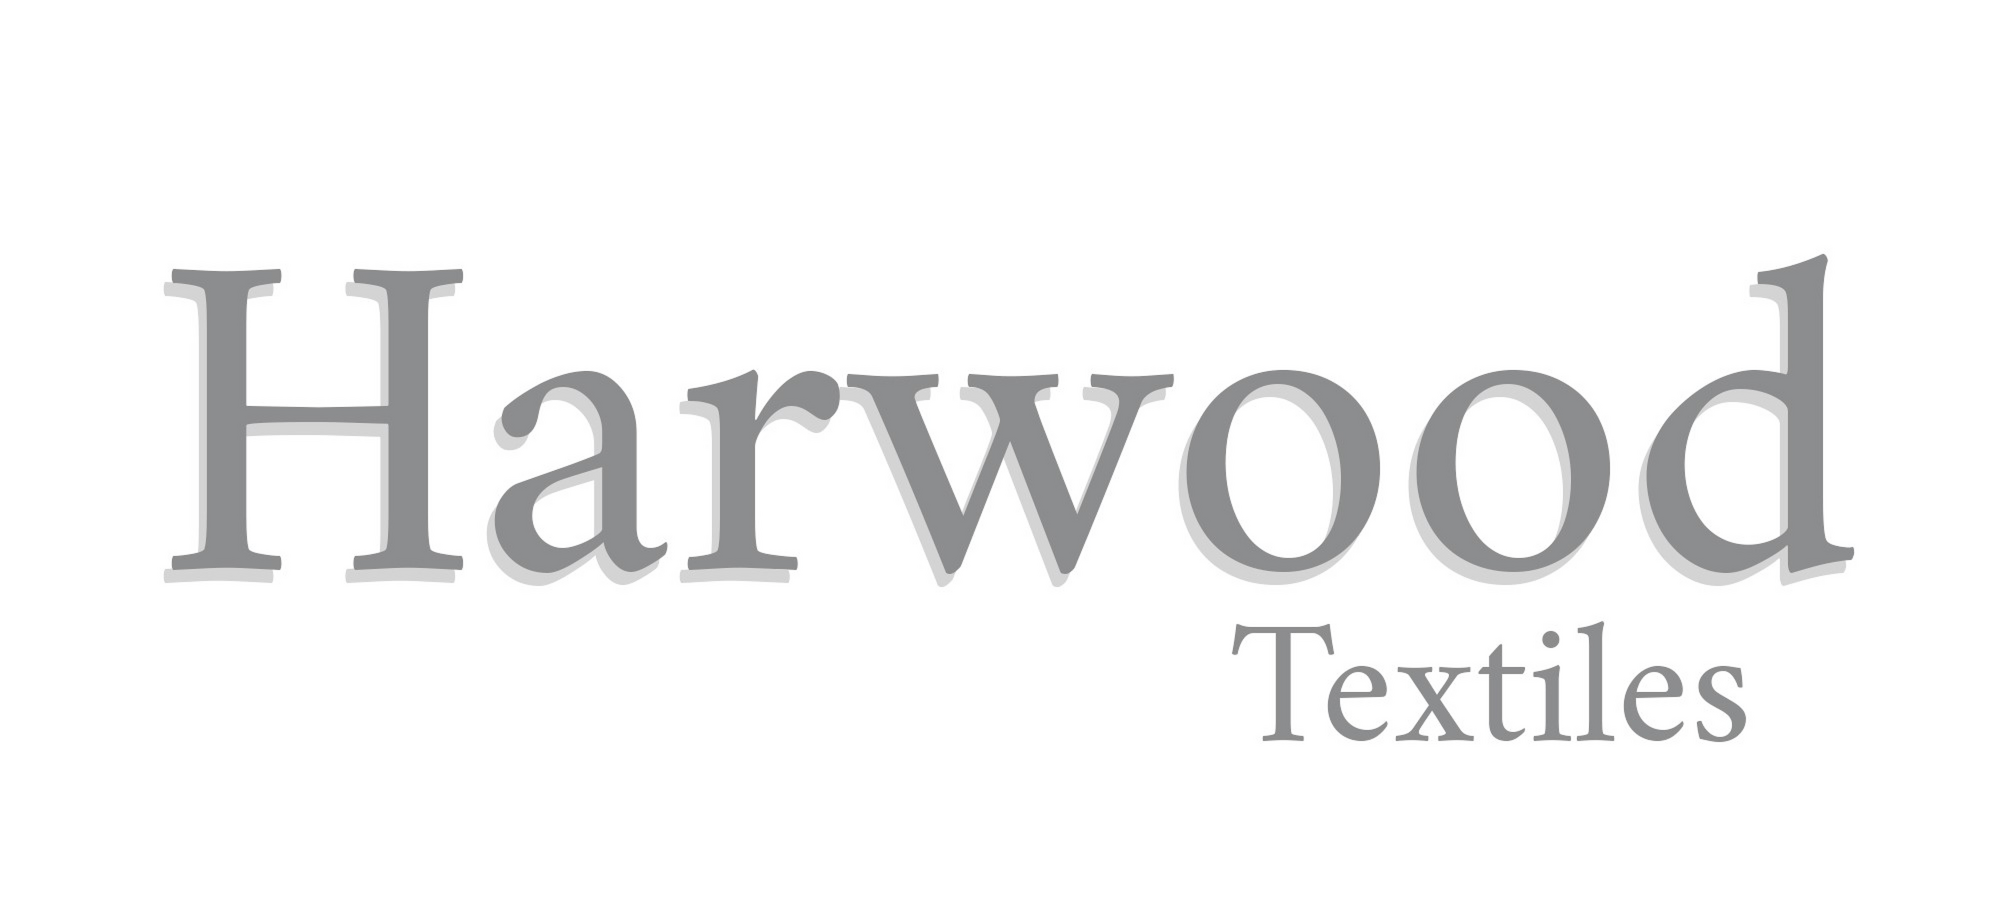 Harwood Textiles Ltd